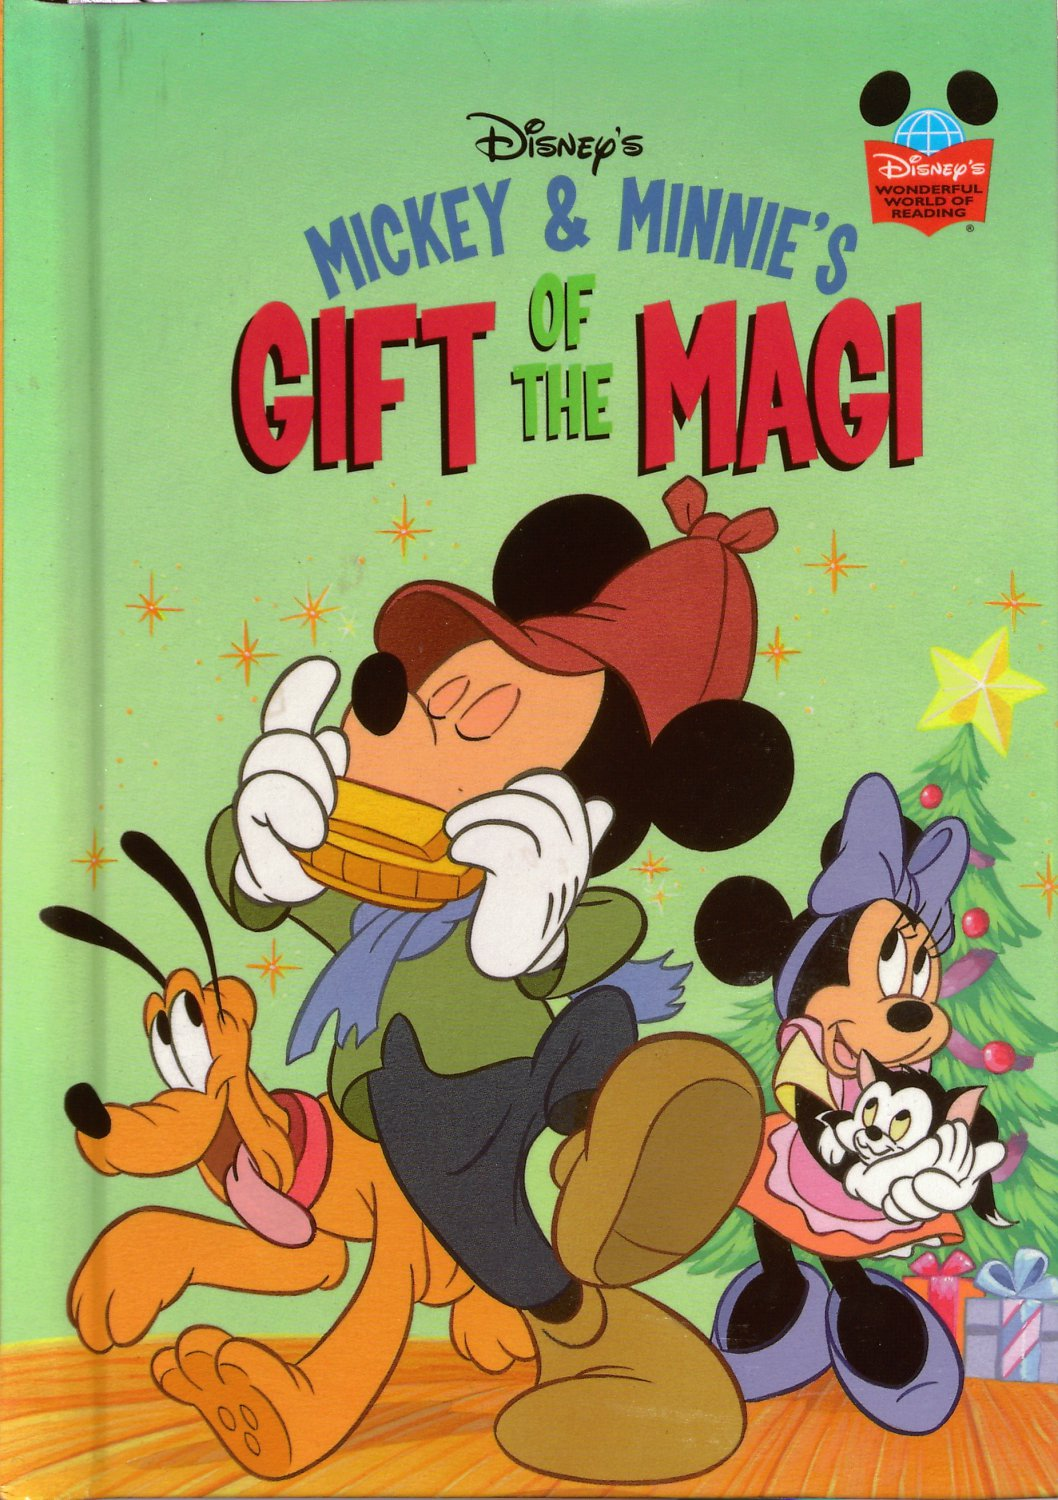 Mickey Amp Minnie S Gift Of The Magi Disney S Wonderful